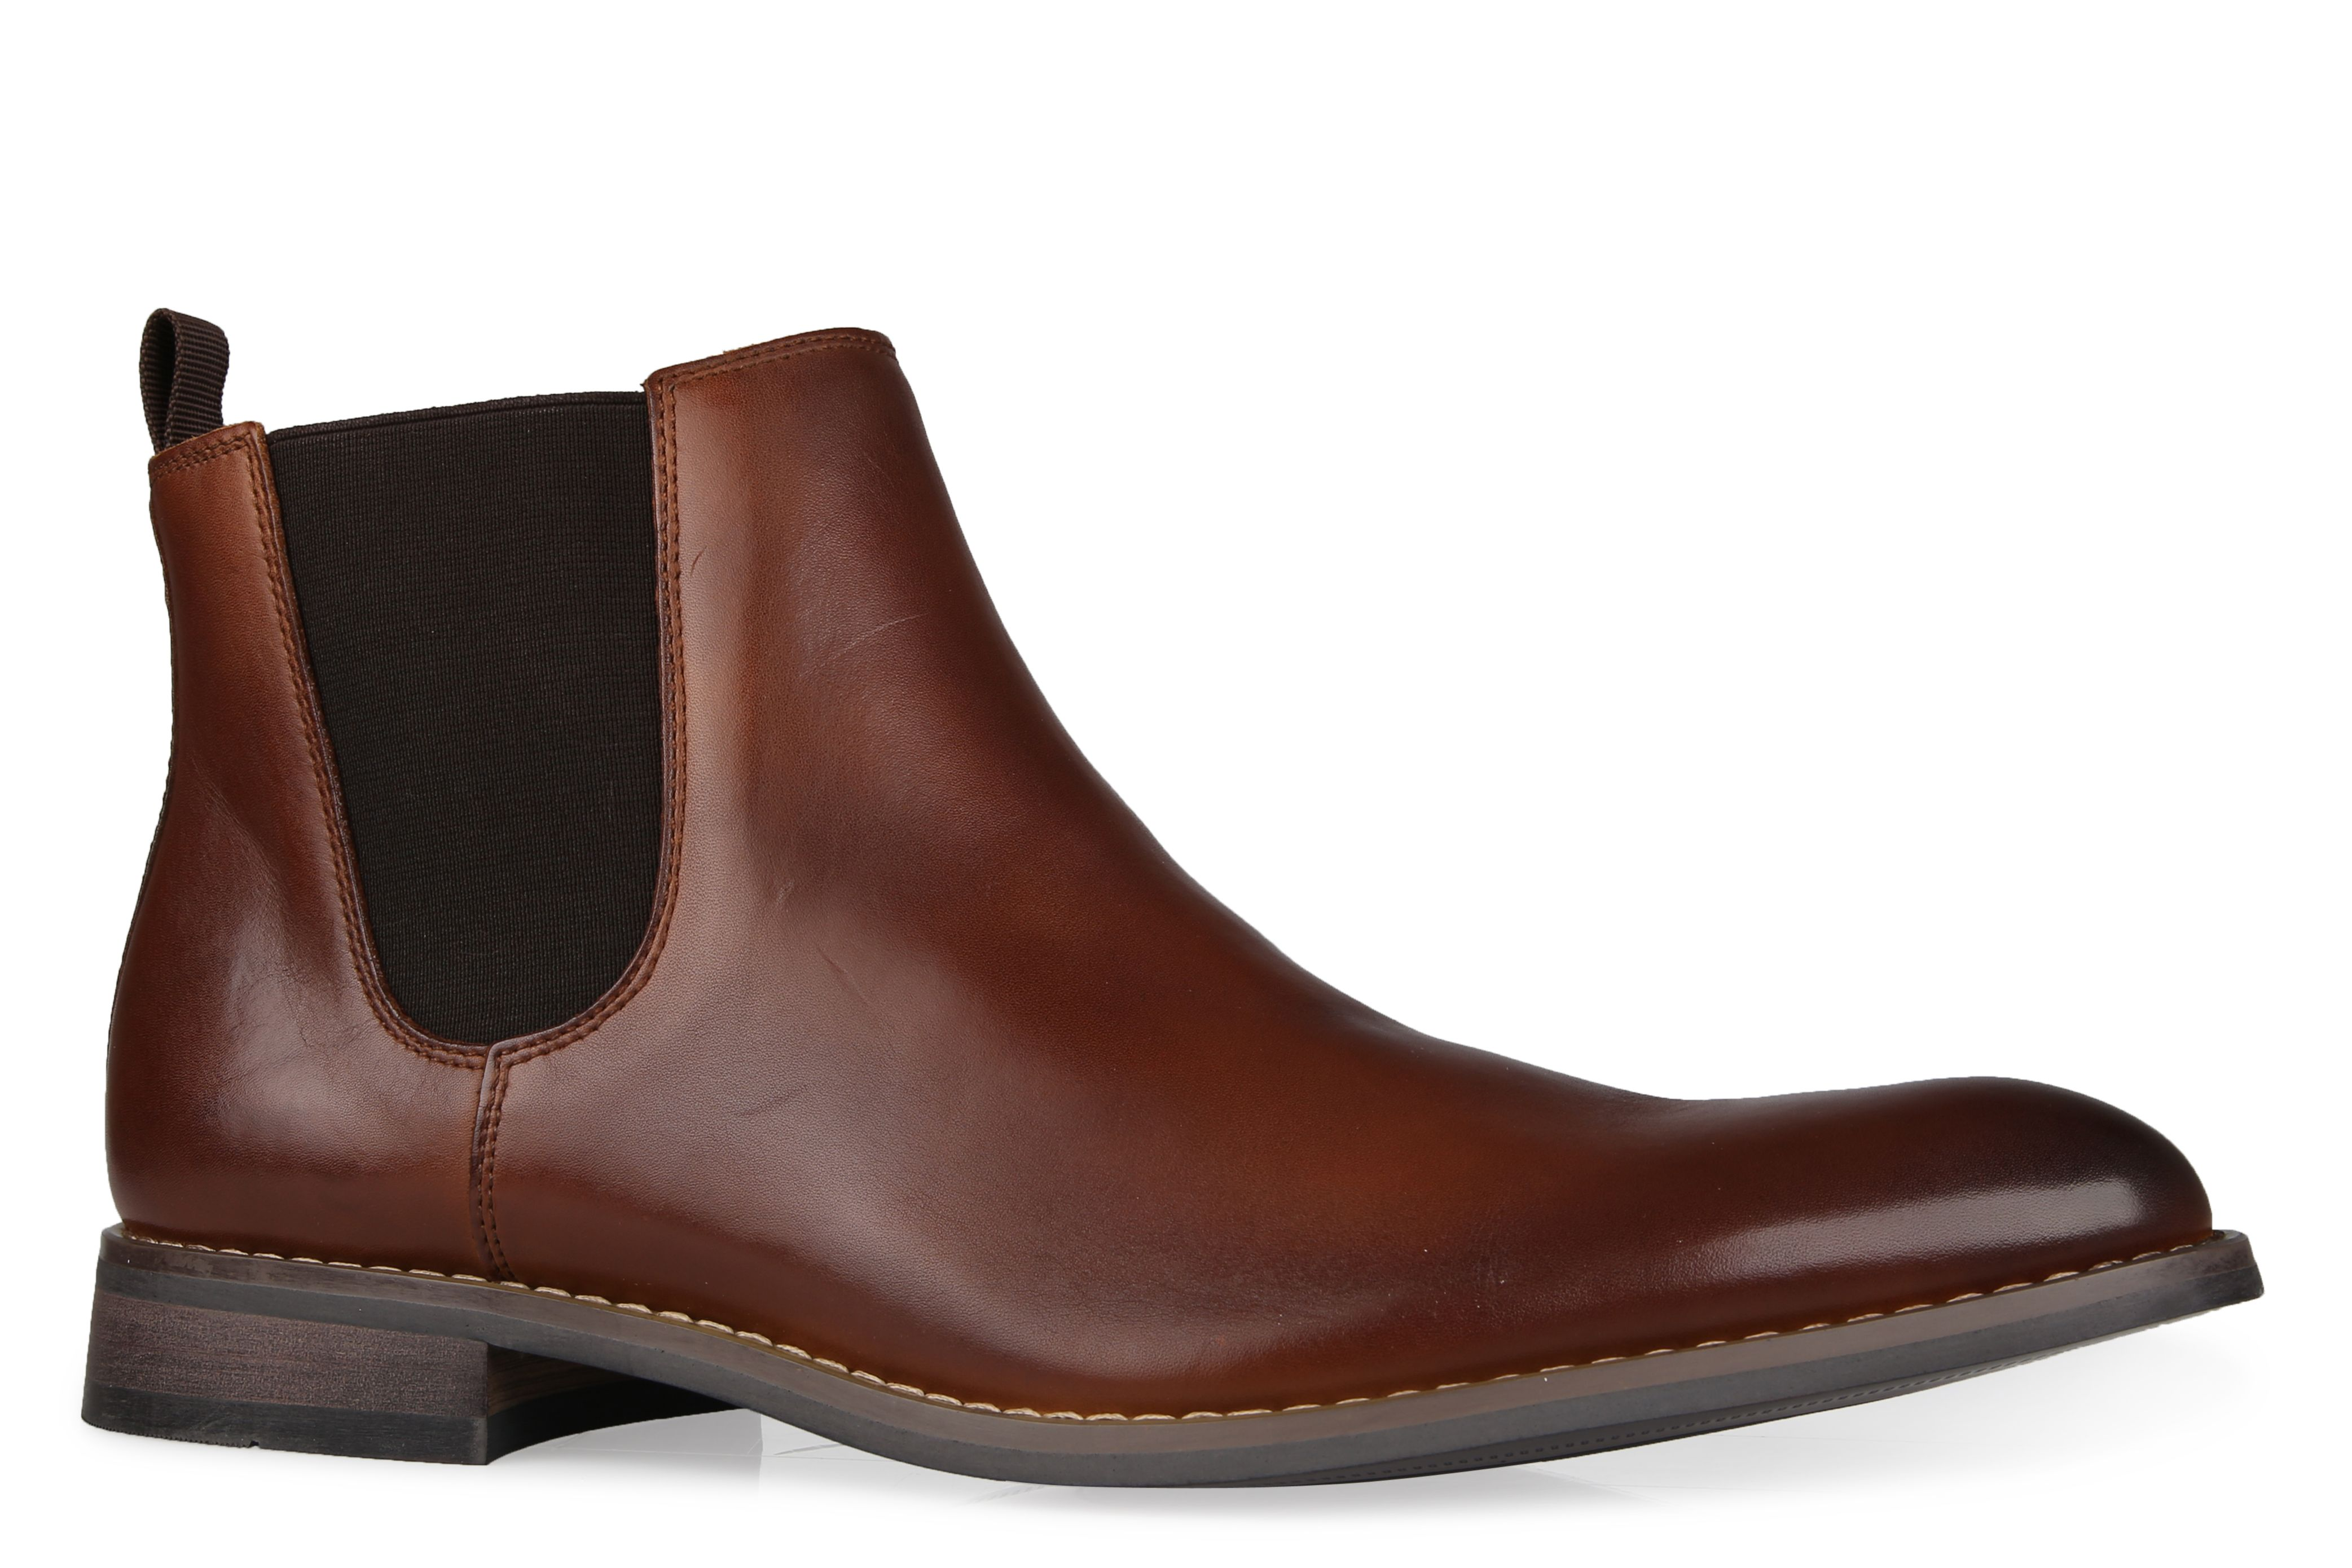 Shoe Connection Bata Ascot Tan Leather Slip On Ankle Boot 189 99 Https Www Shoeconnection Co Nz Mens Boots Slip Slip On Boots Mens Slip On Boots Boots